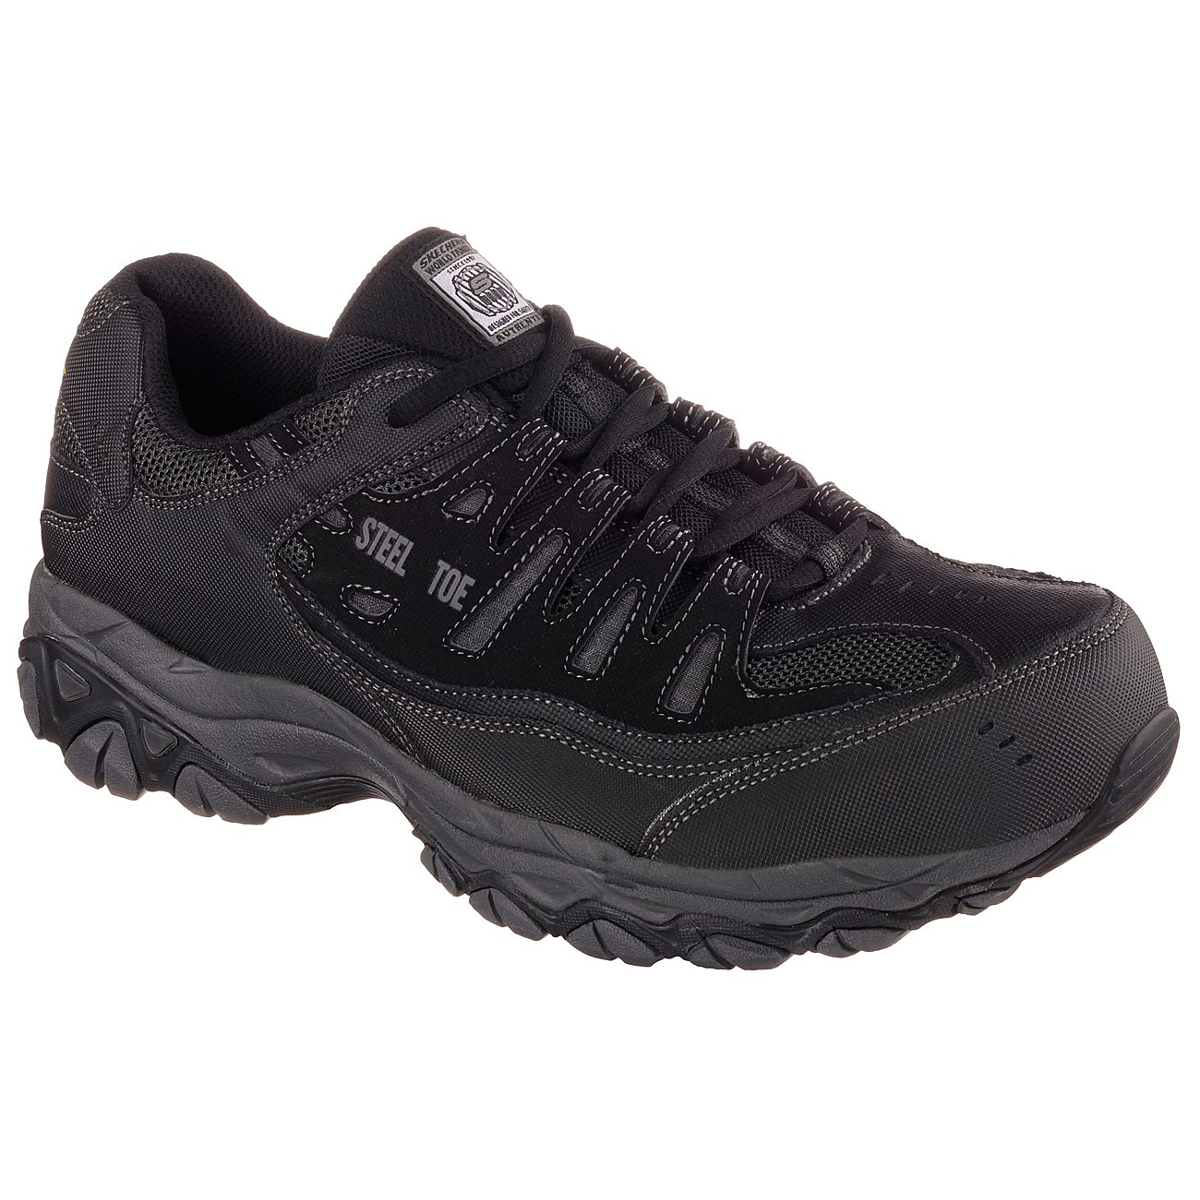 Skechers Men's Work Relaxed Fit: Crankton Steel Toe Work Shoes - Black, 9